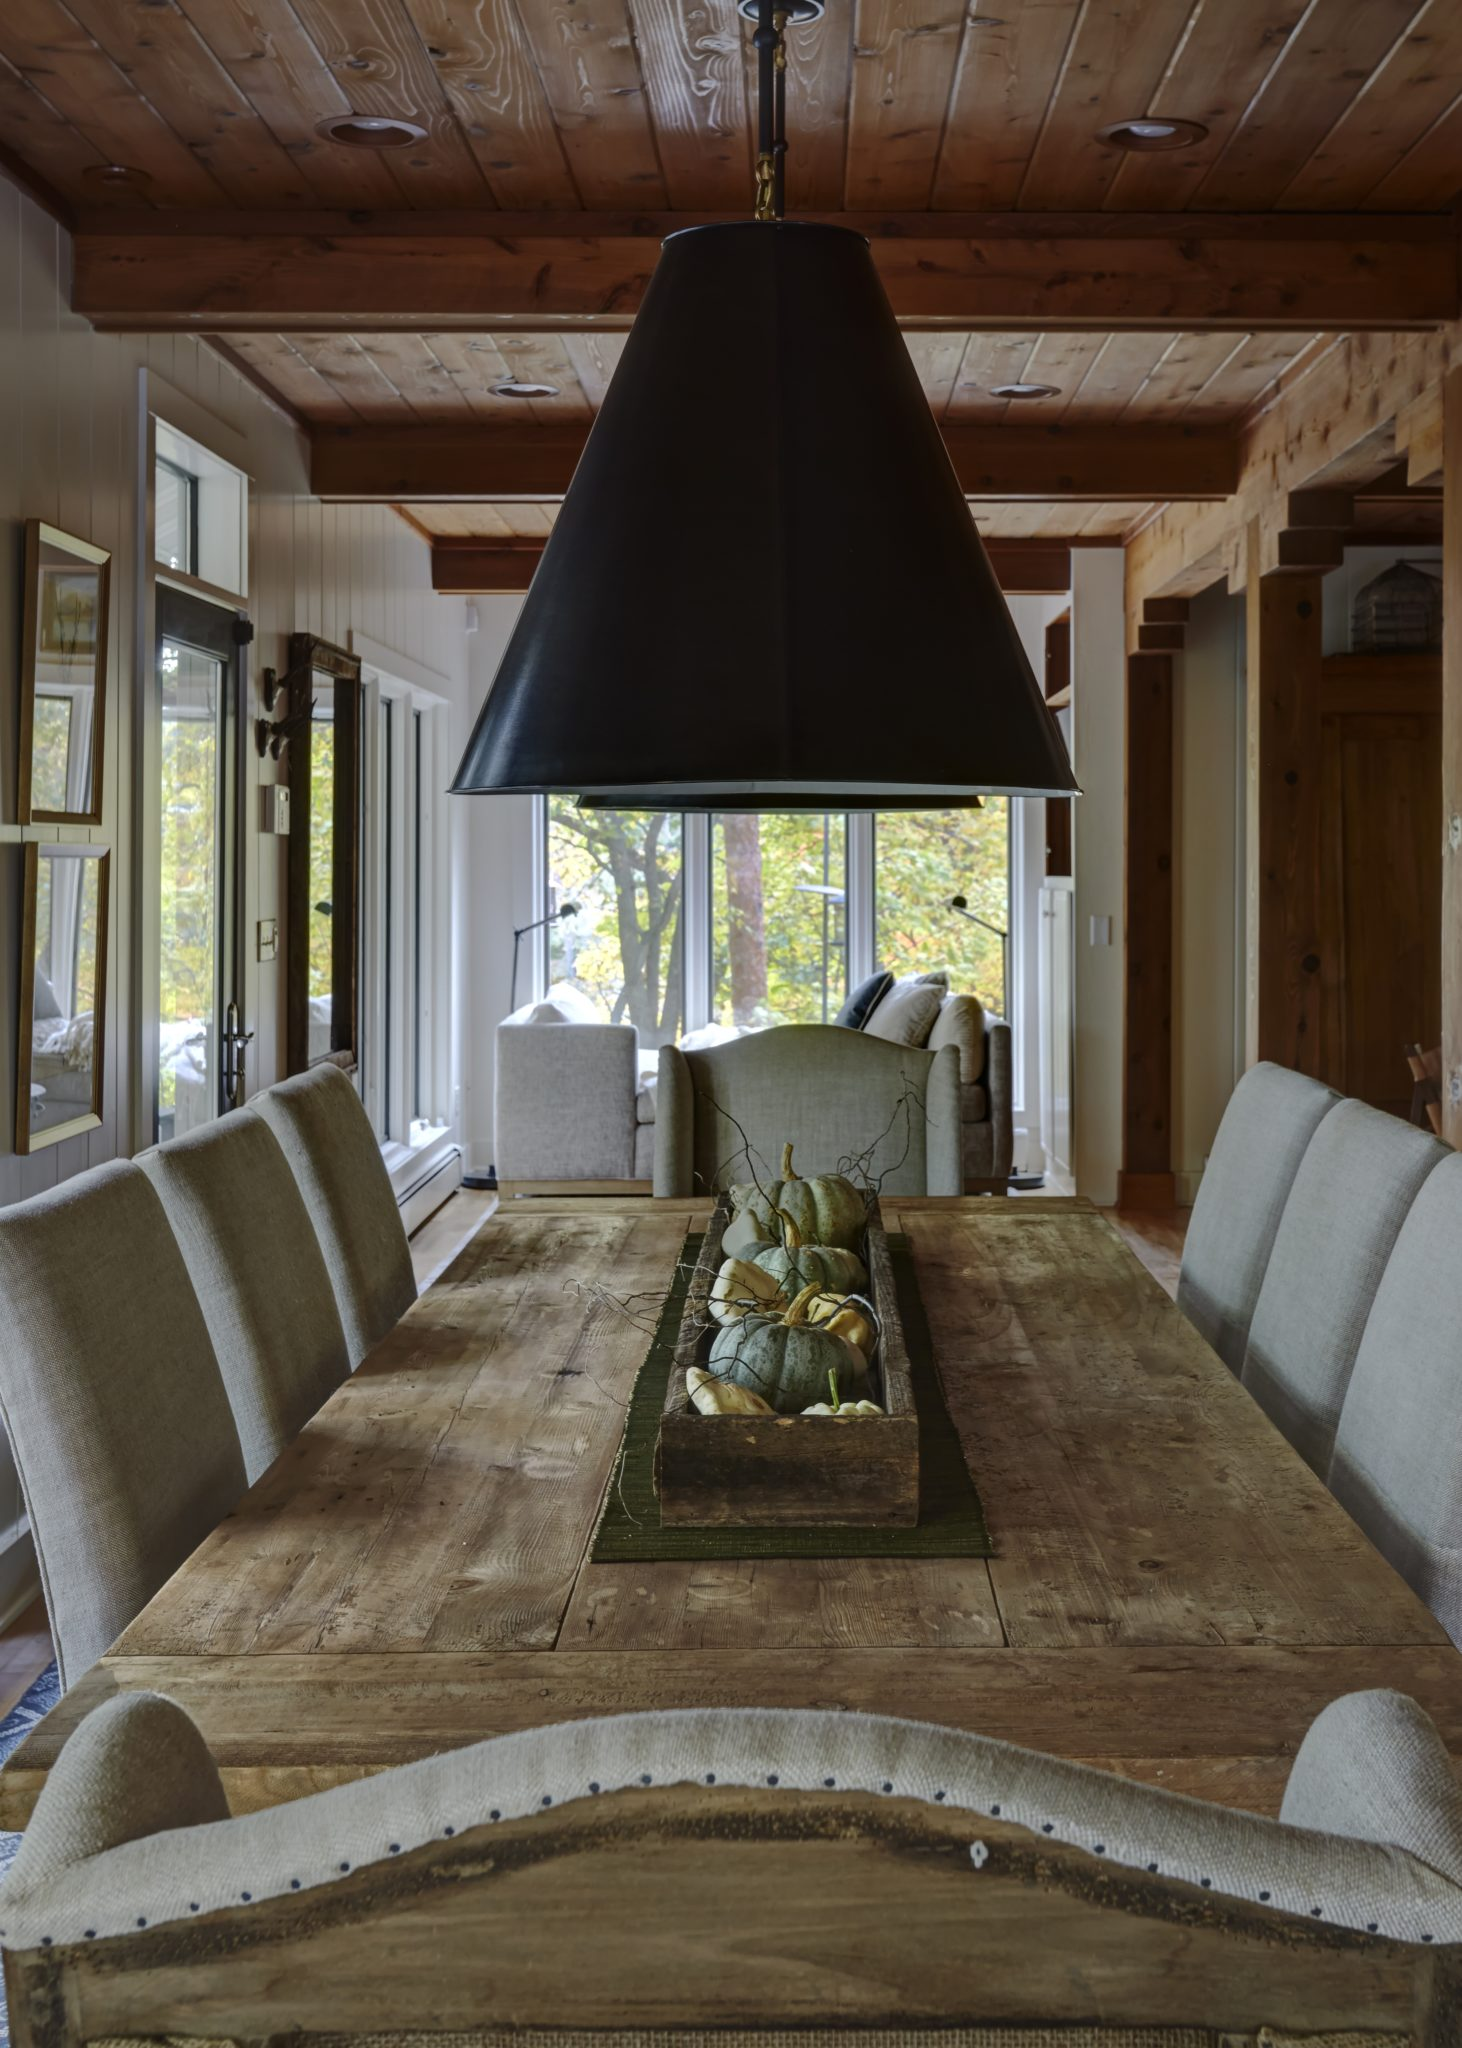 A rustic wood dining table creates comfort and charm for everyone. By Schlagenhaft Studio